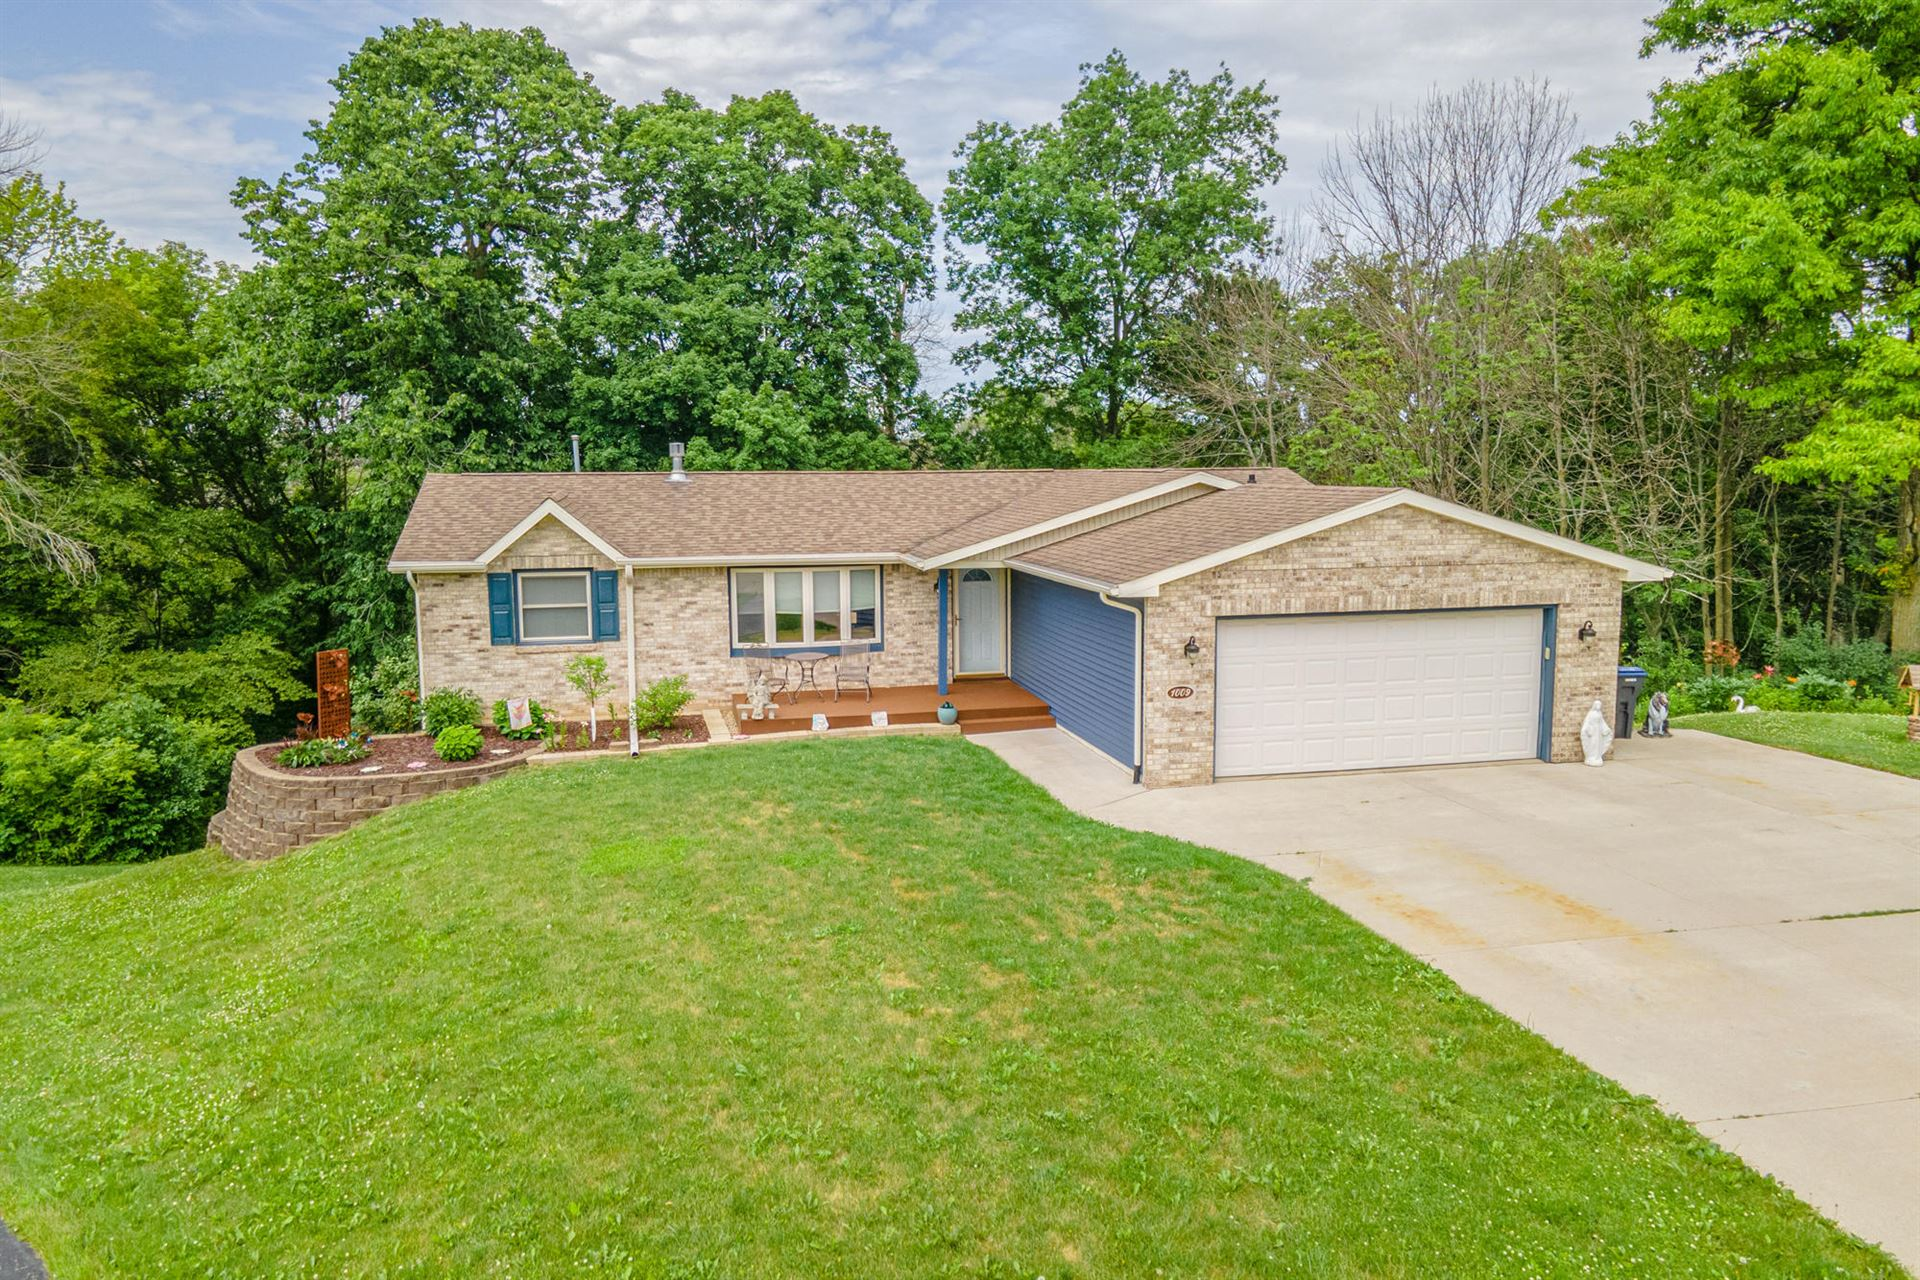 1009 Evergreen Ct, Plymouth, WI 53073 - MLS#: 1750559